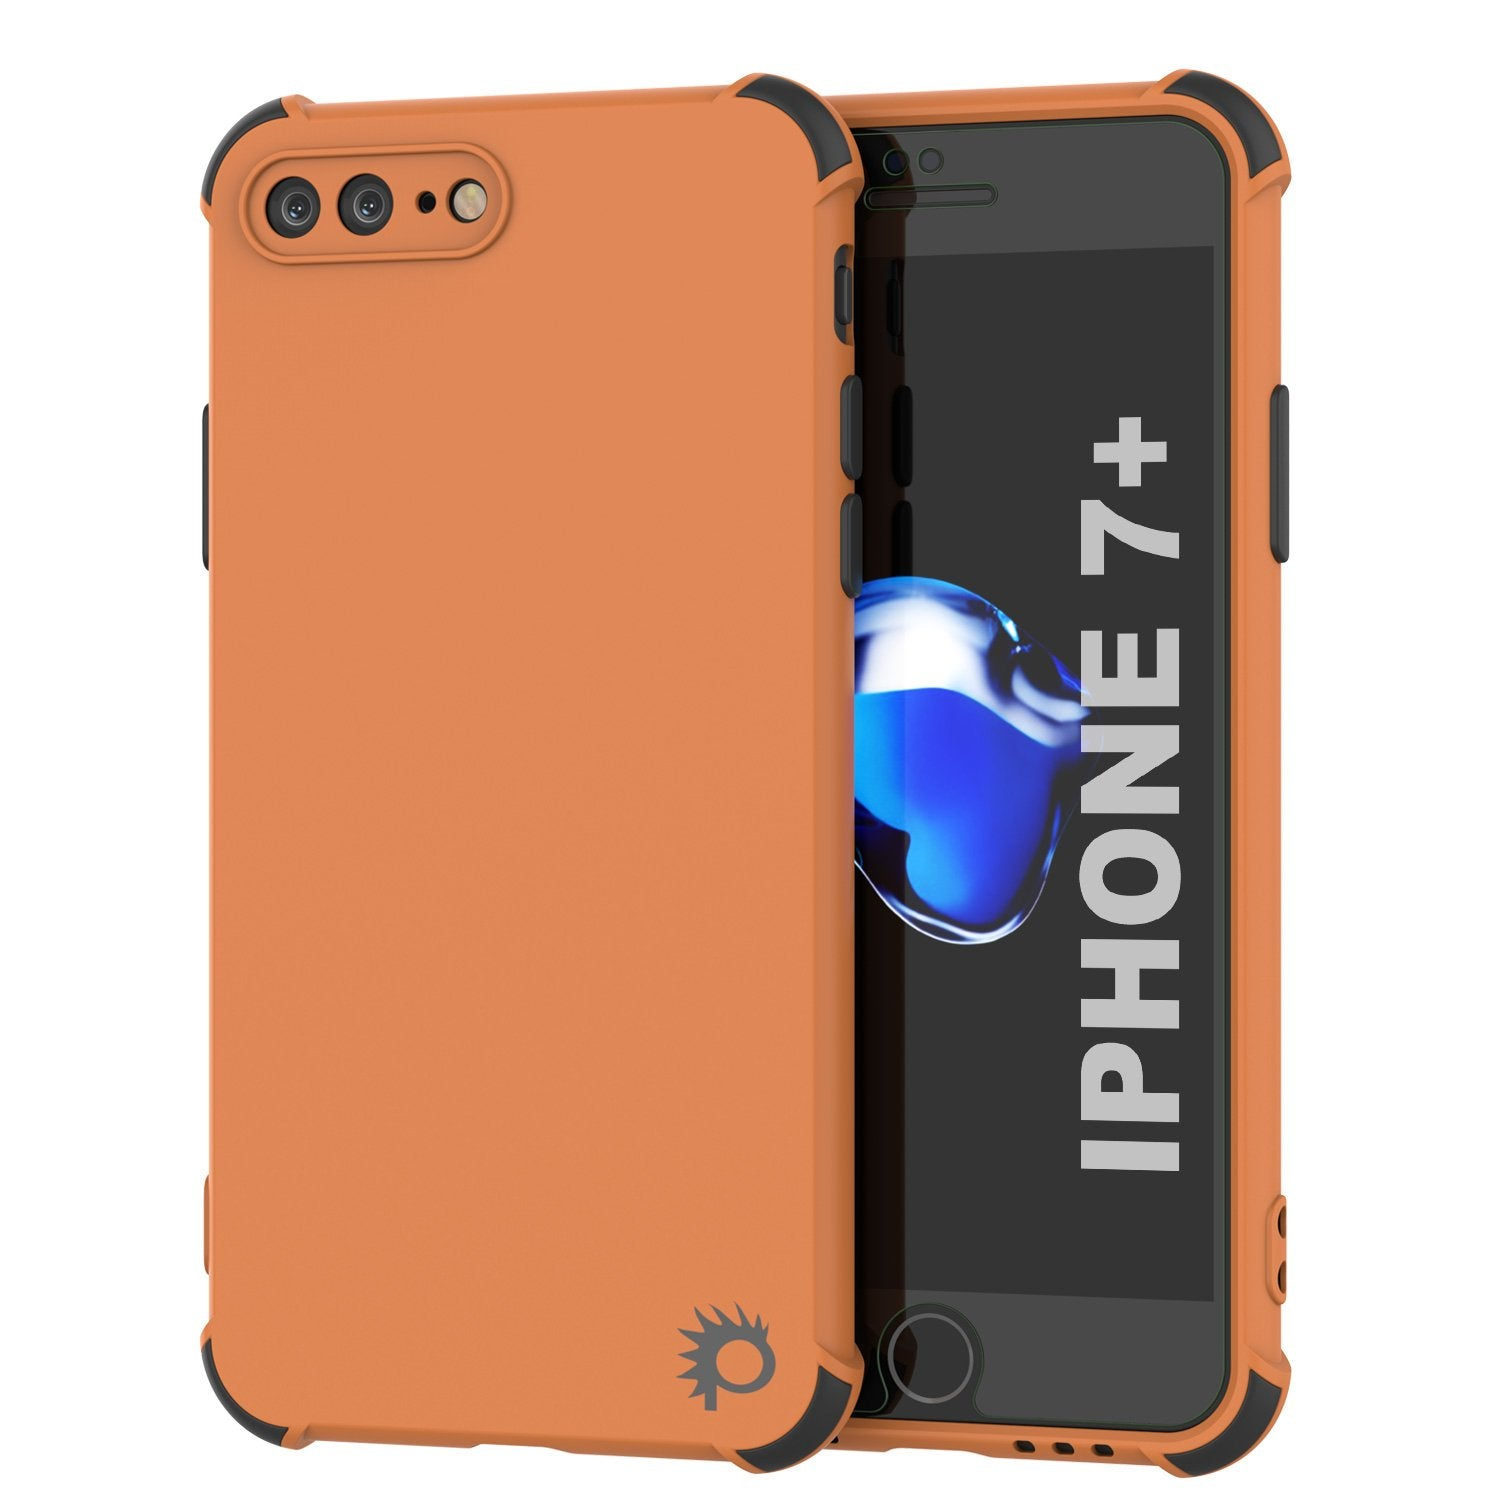 Punkcase Protective & Lightweight TPU Case [Sunshine Series] for iPhone 7+ Plus [Orange]